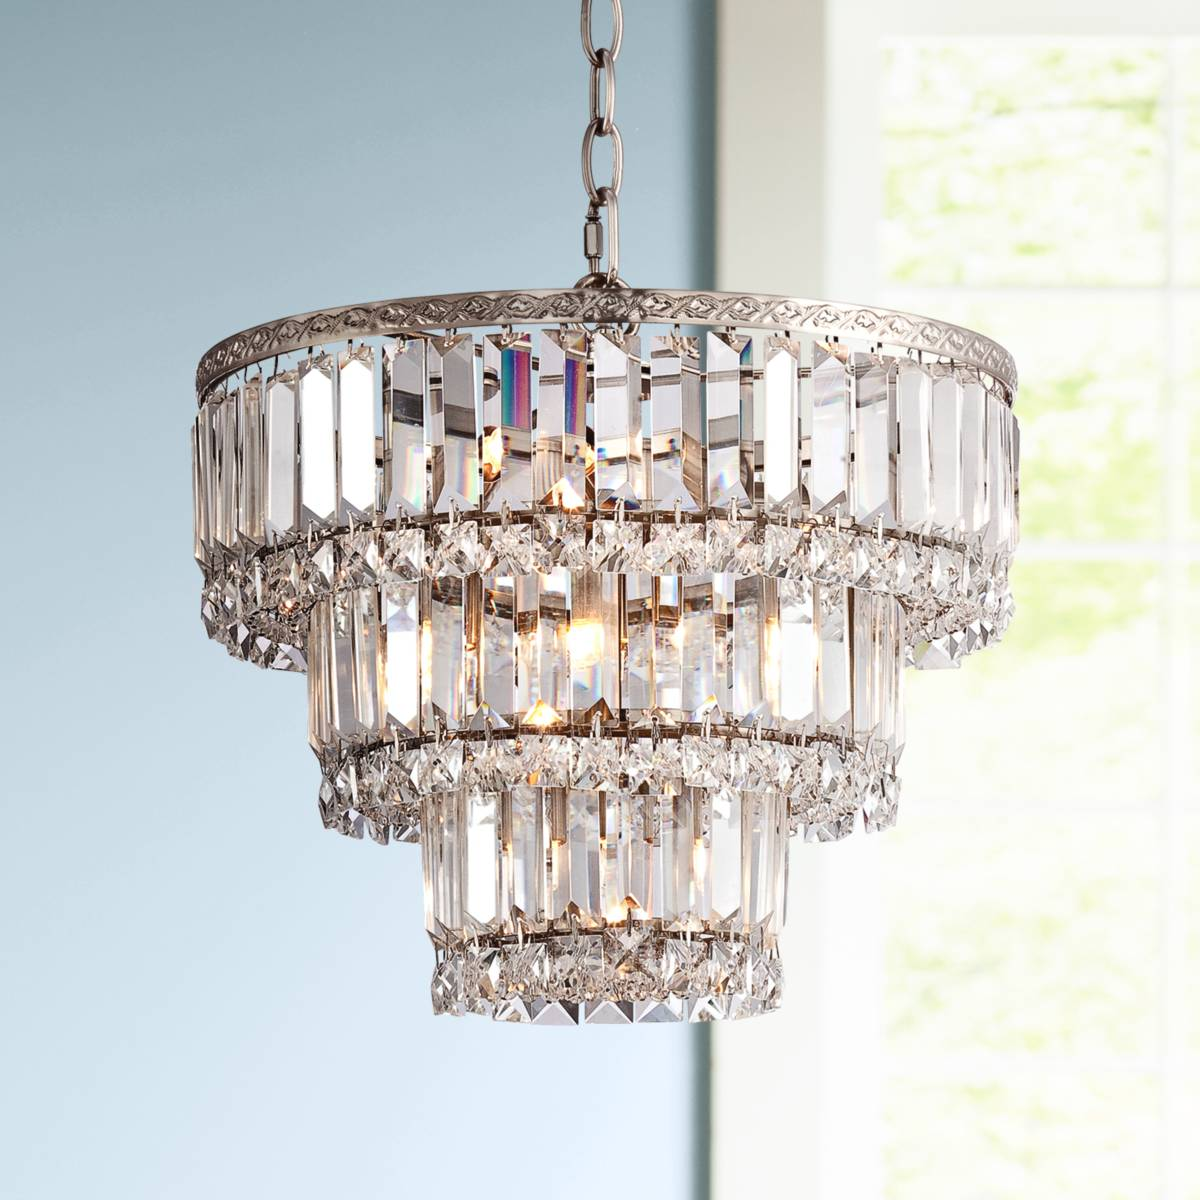 Lamp Plus Stores: Little Luxurious Chandelier